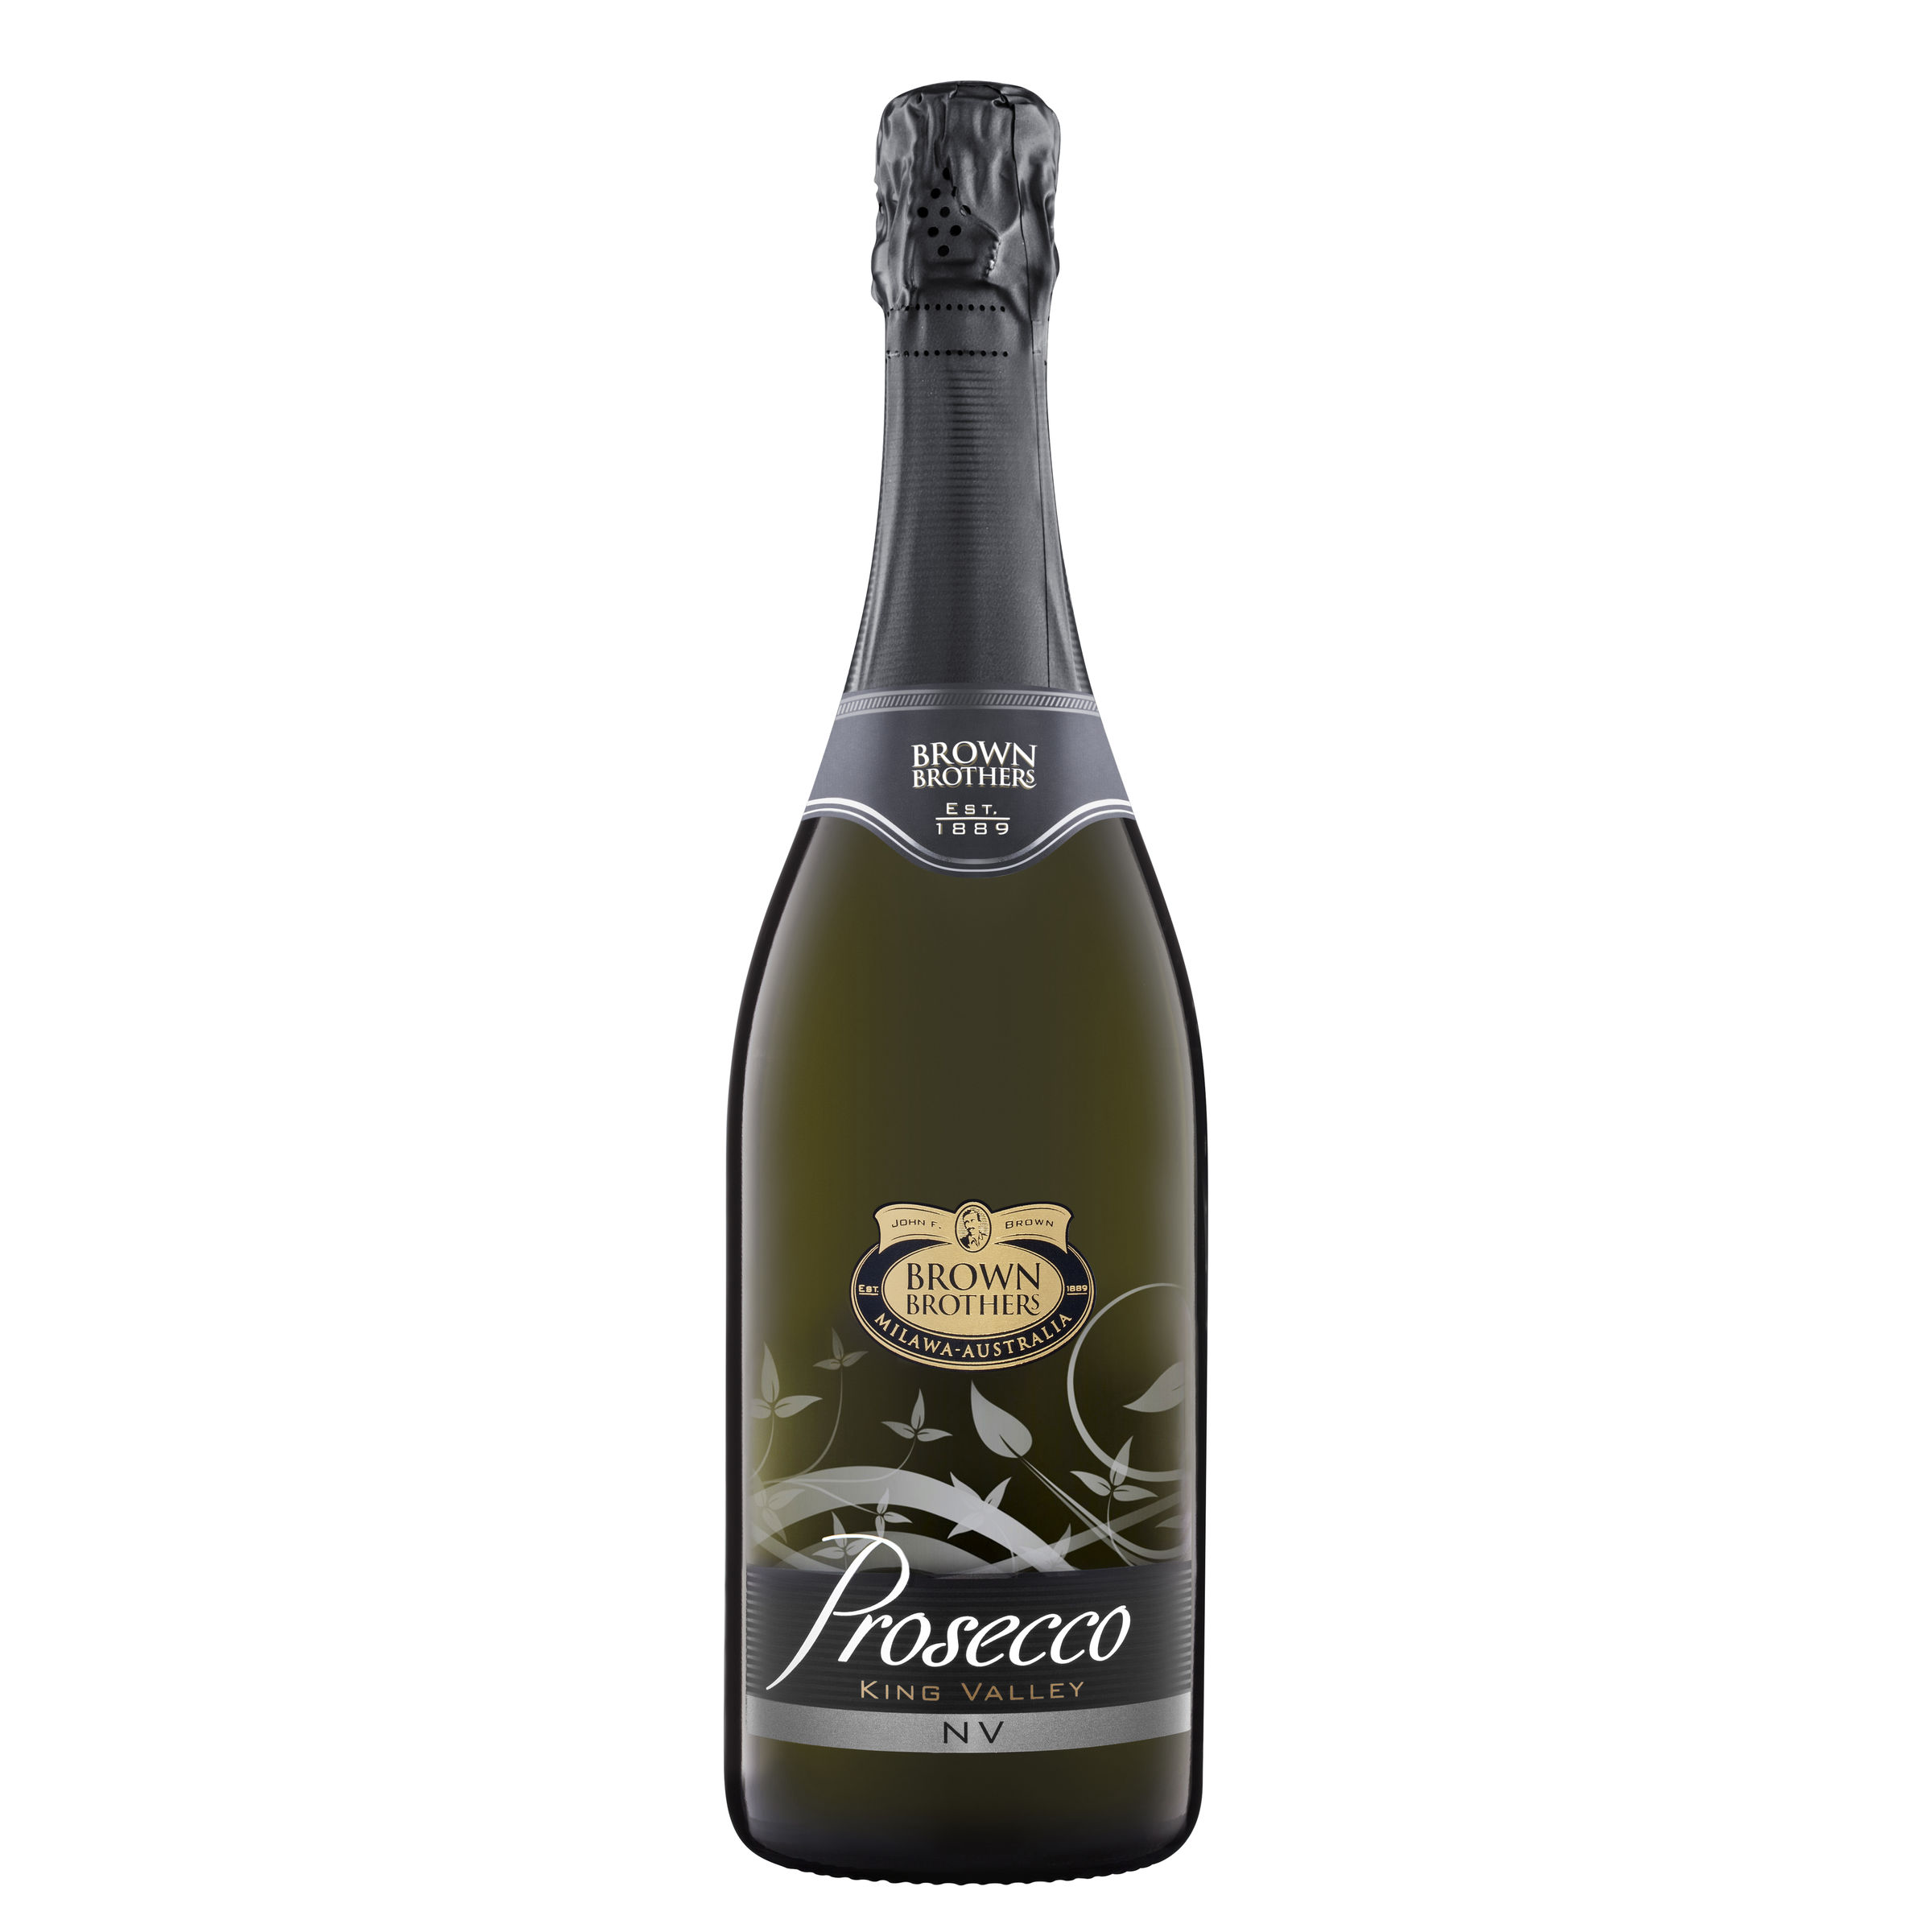 BROWN BROTHERS NON VINTAGE PROSECCO